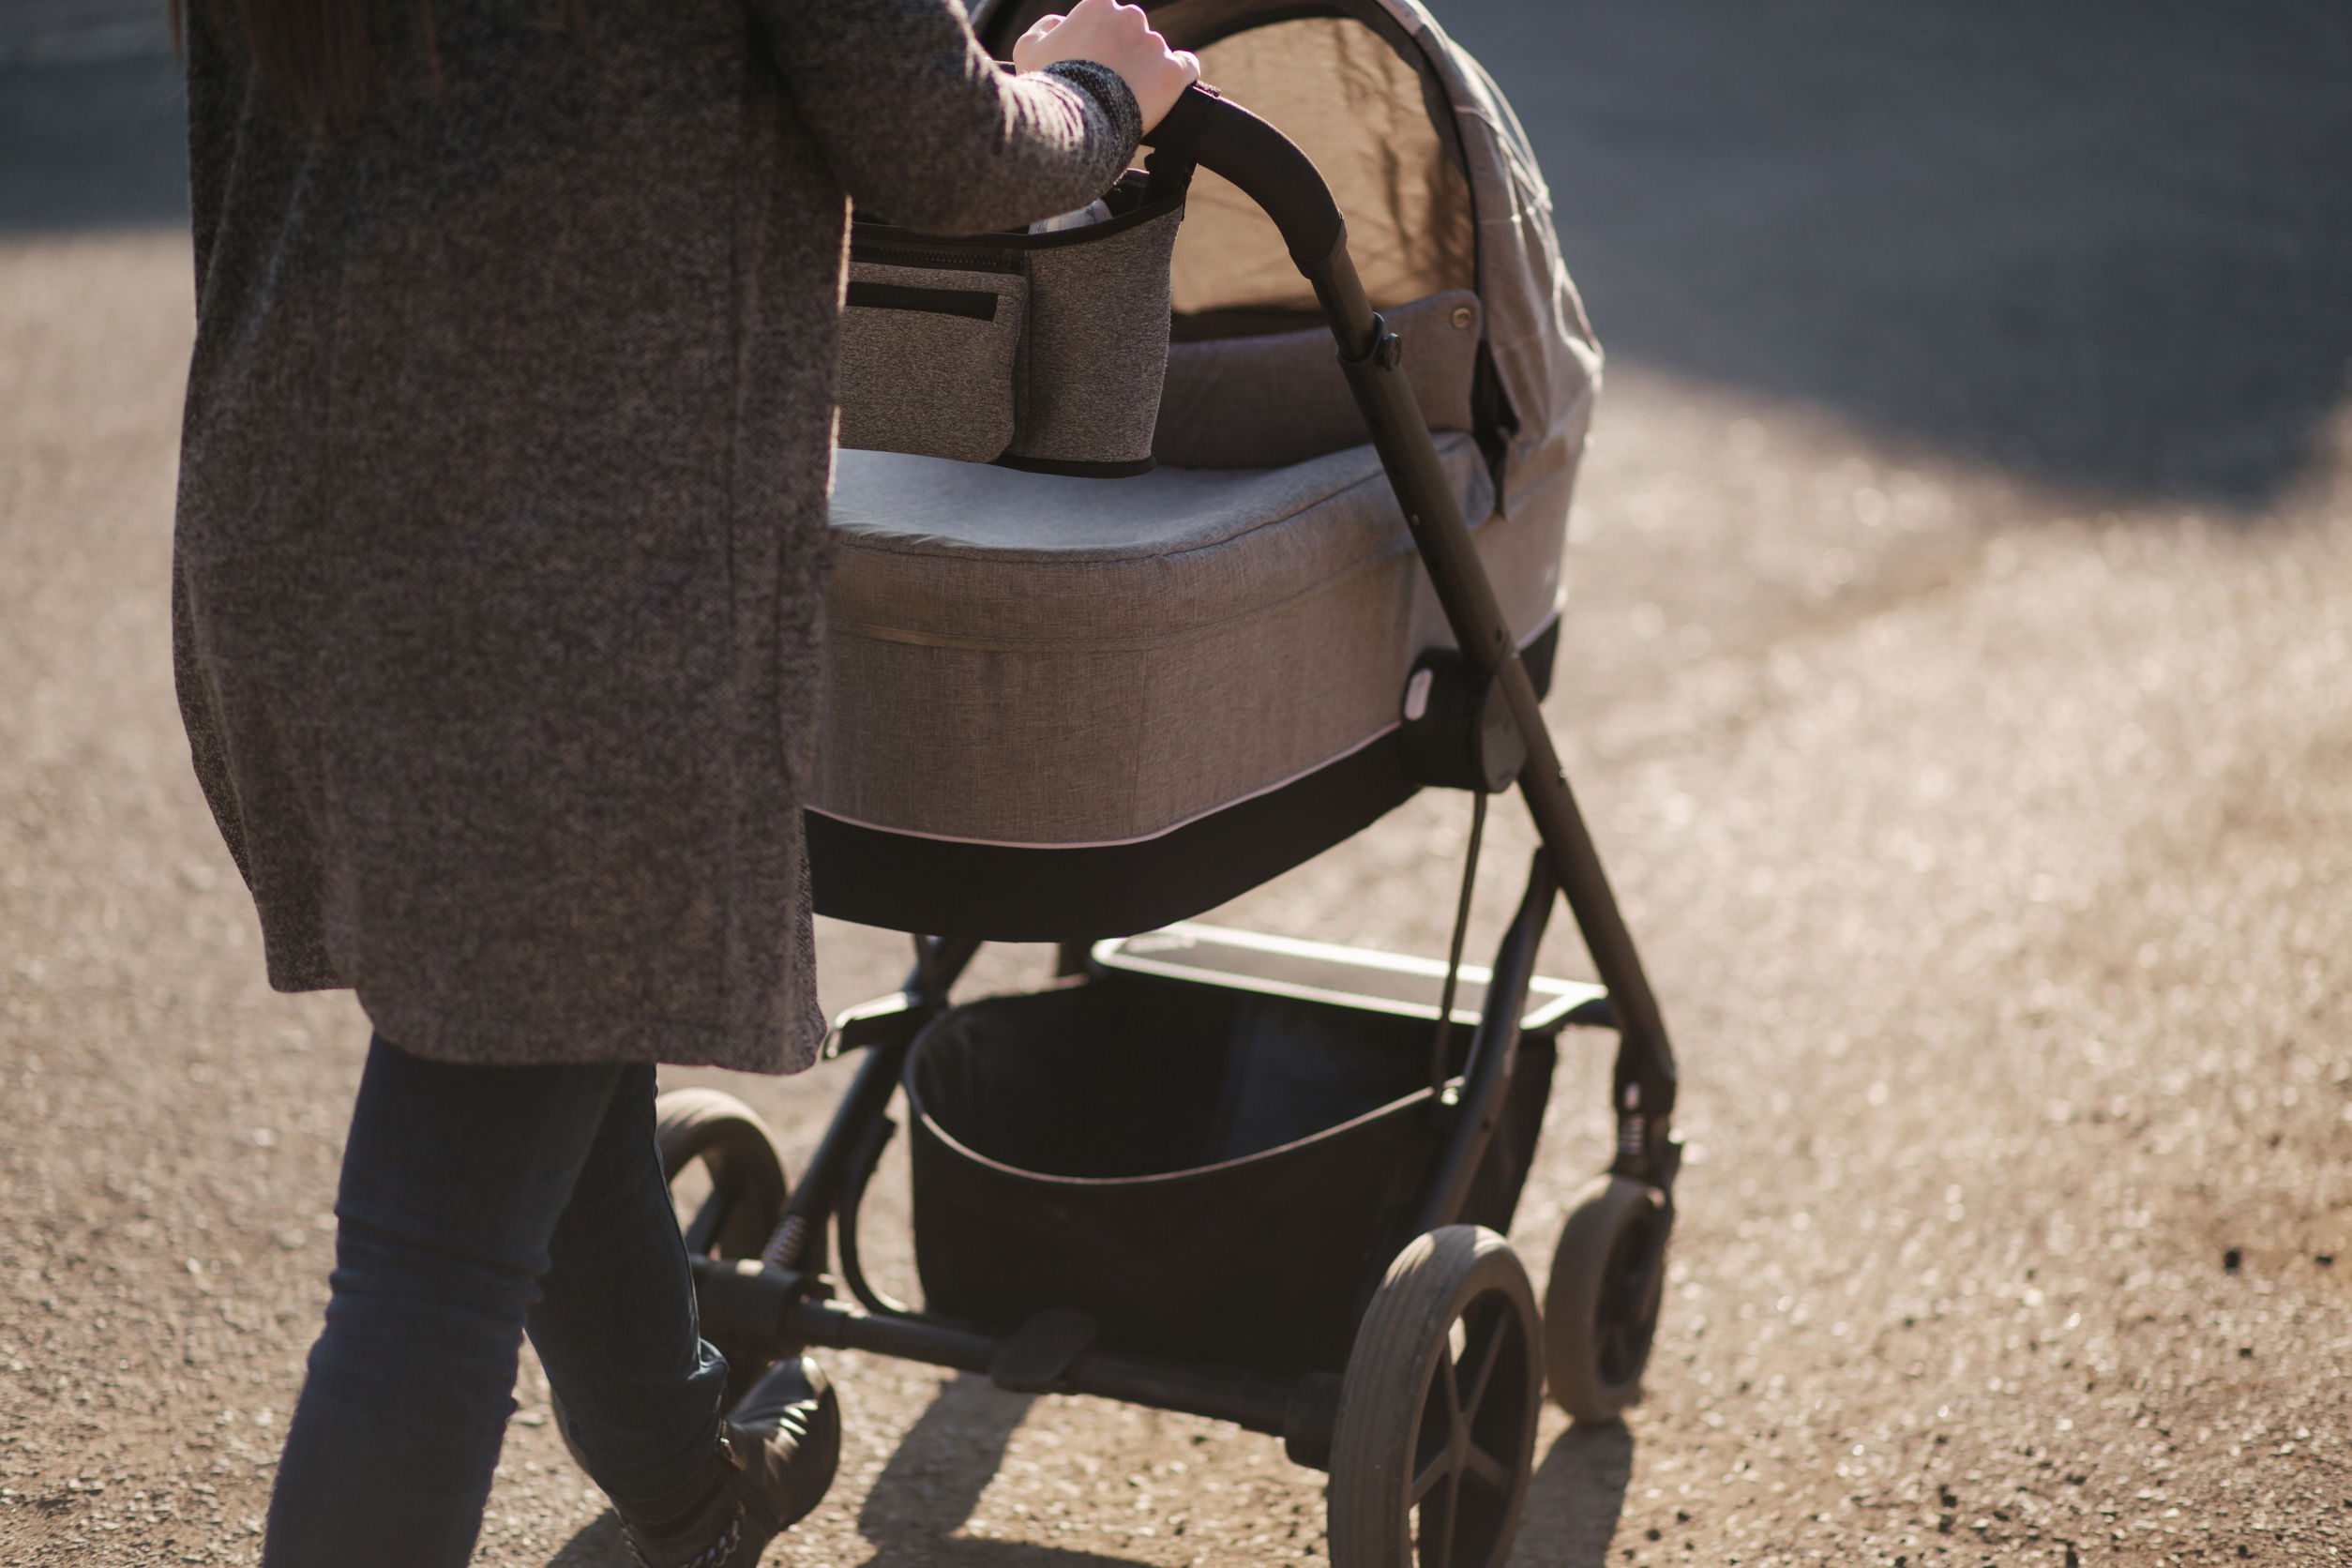 Pram footmuff: Shopping Guide and Recommendations (09/21)